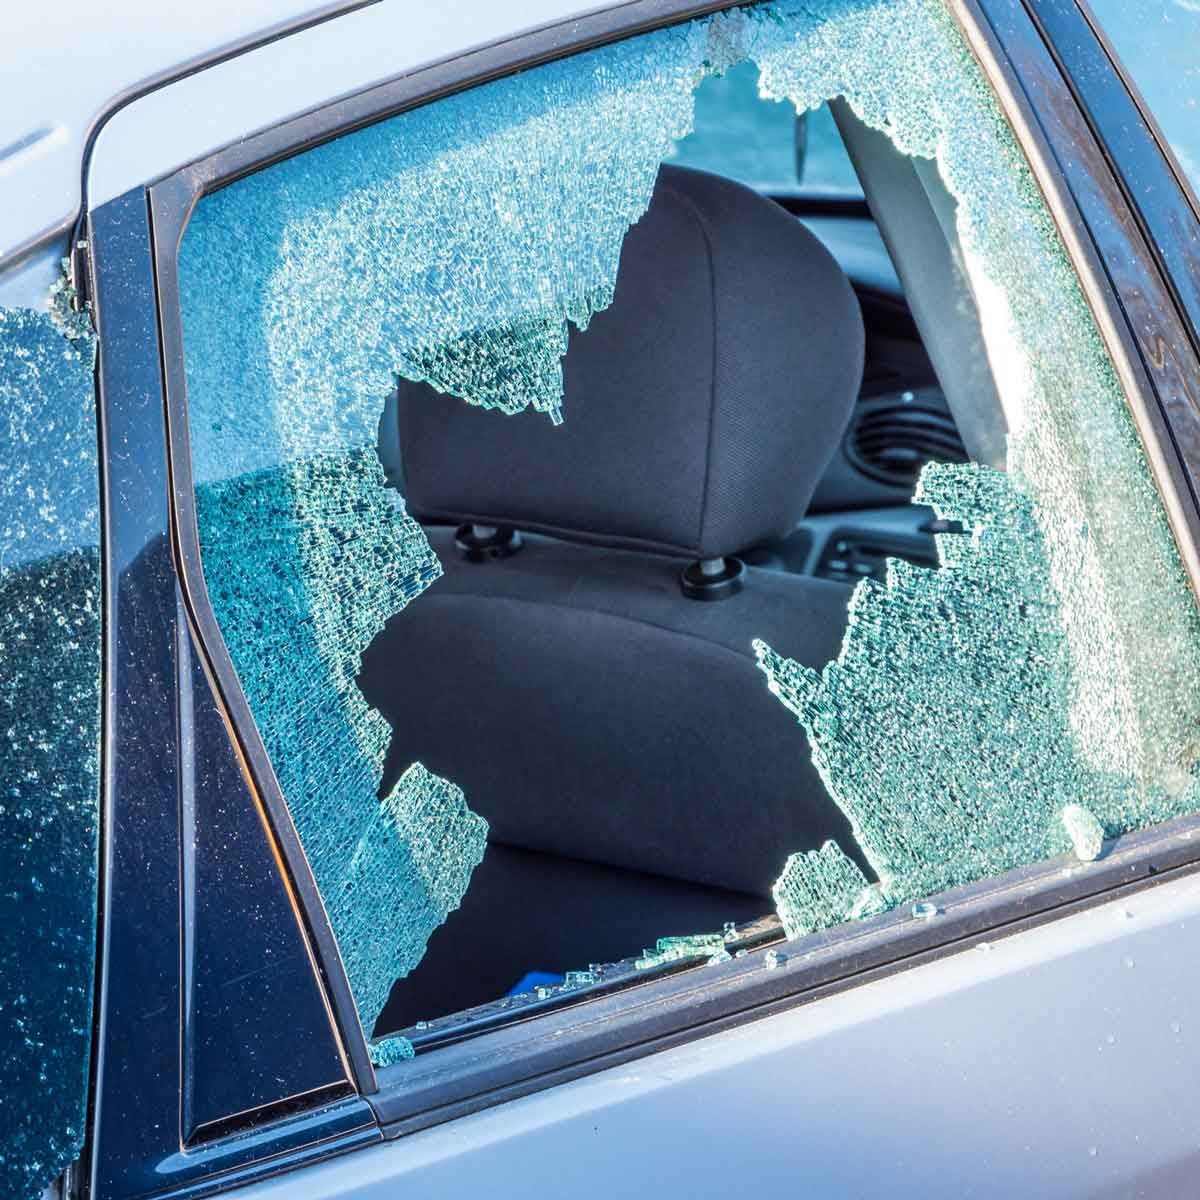 How To Temporarily Cover A Broken Car Window In 2020 Car Window Car Window Coverings